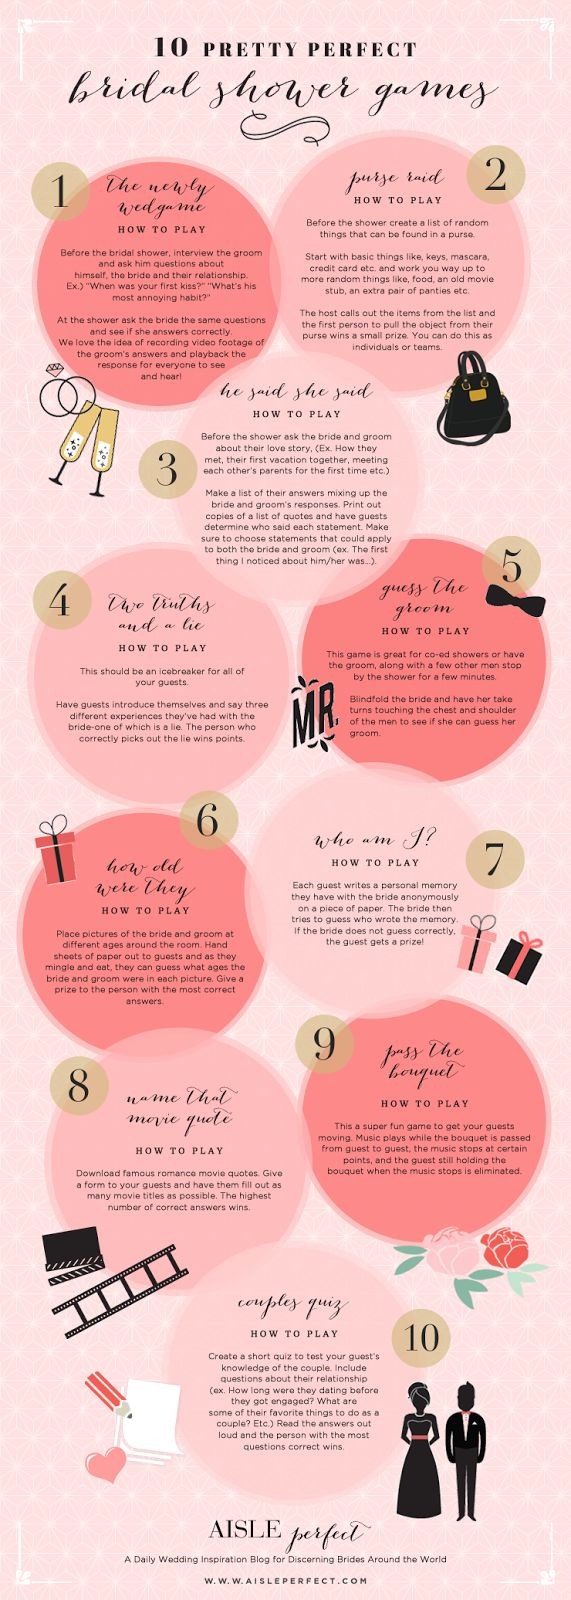 10 Pretty Perfect Bridal Shower Games